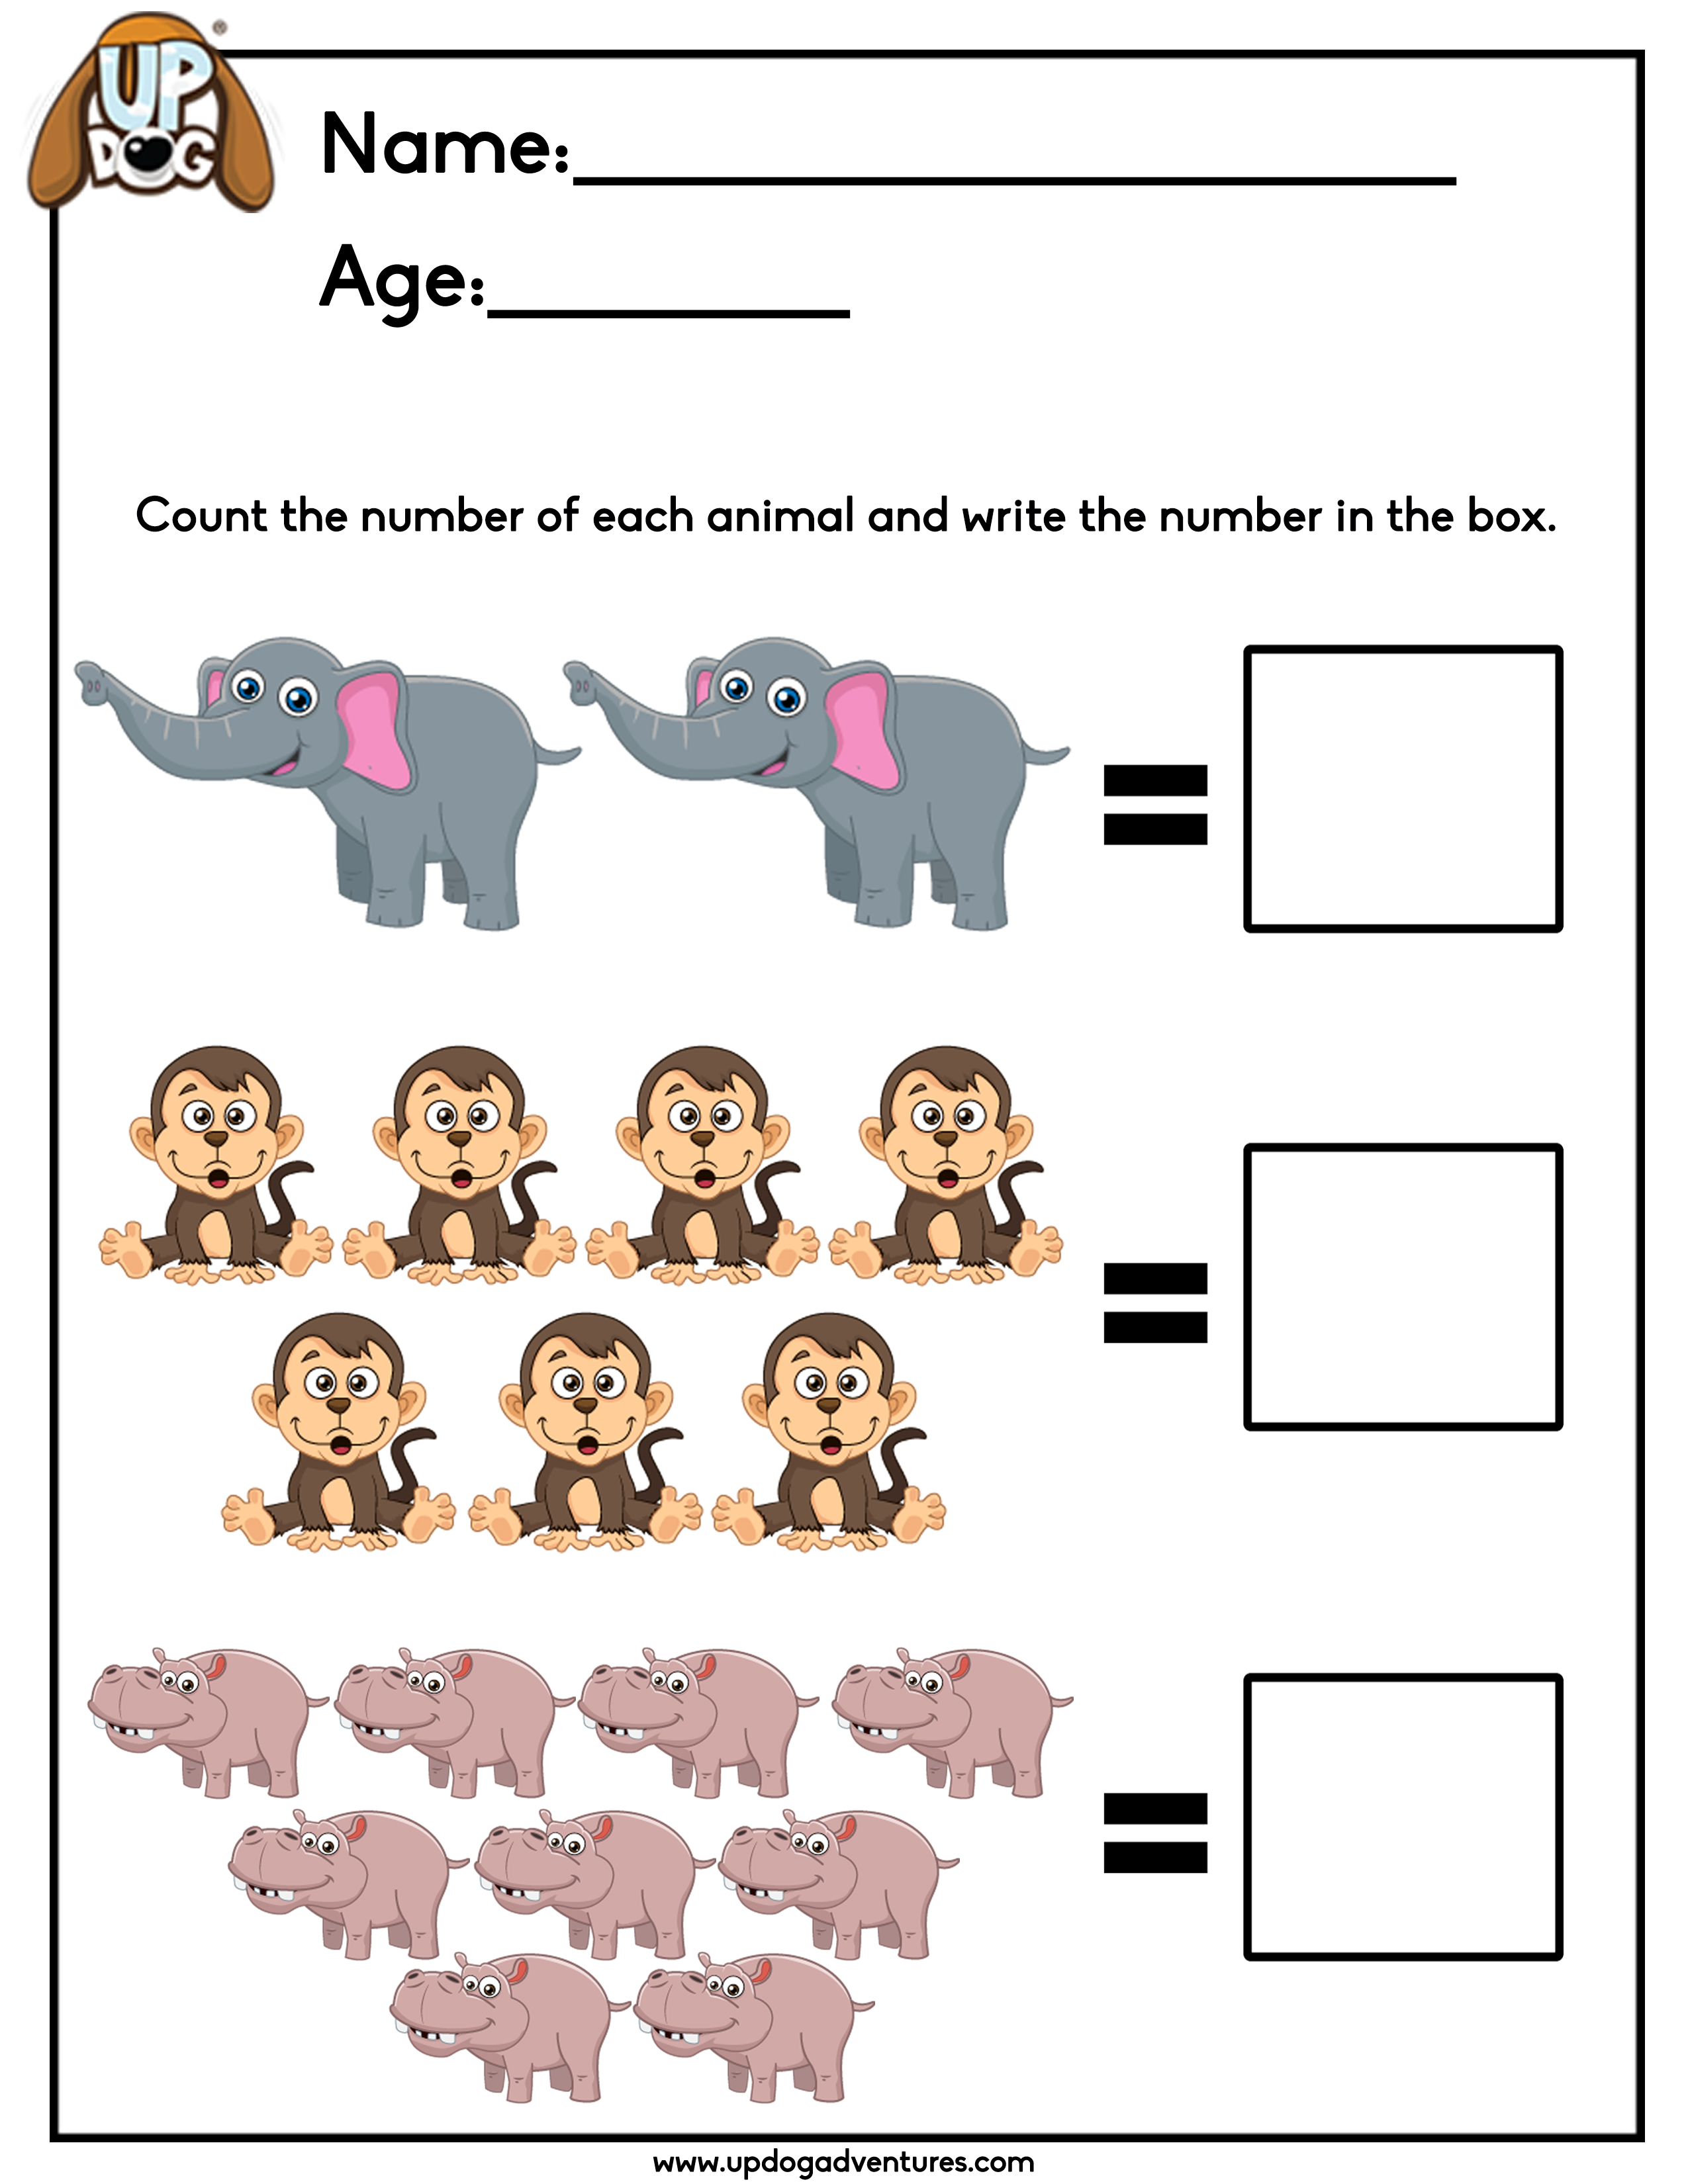 mathematics-count-the-animals-4